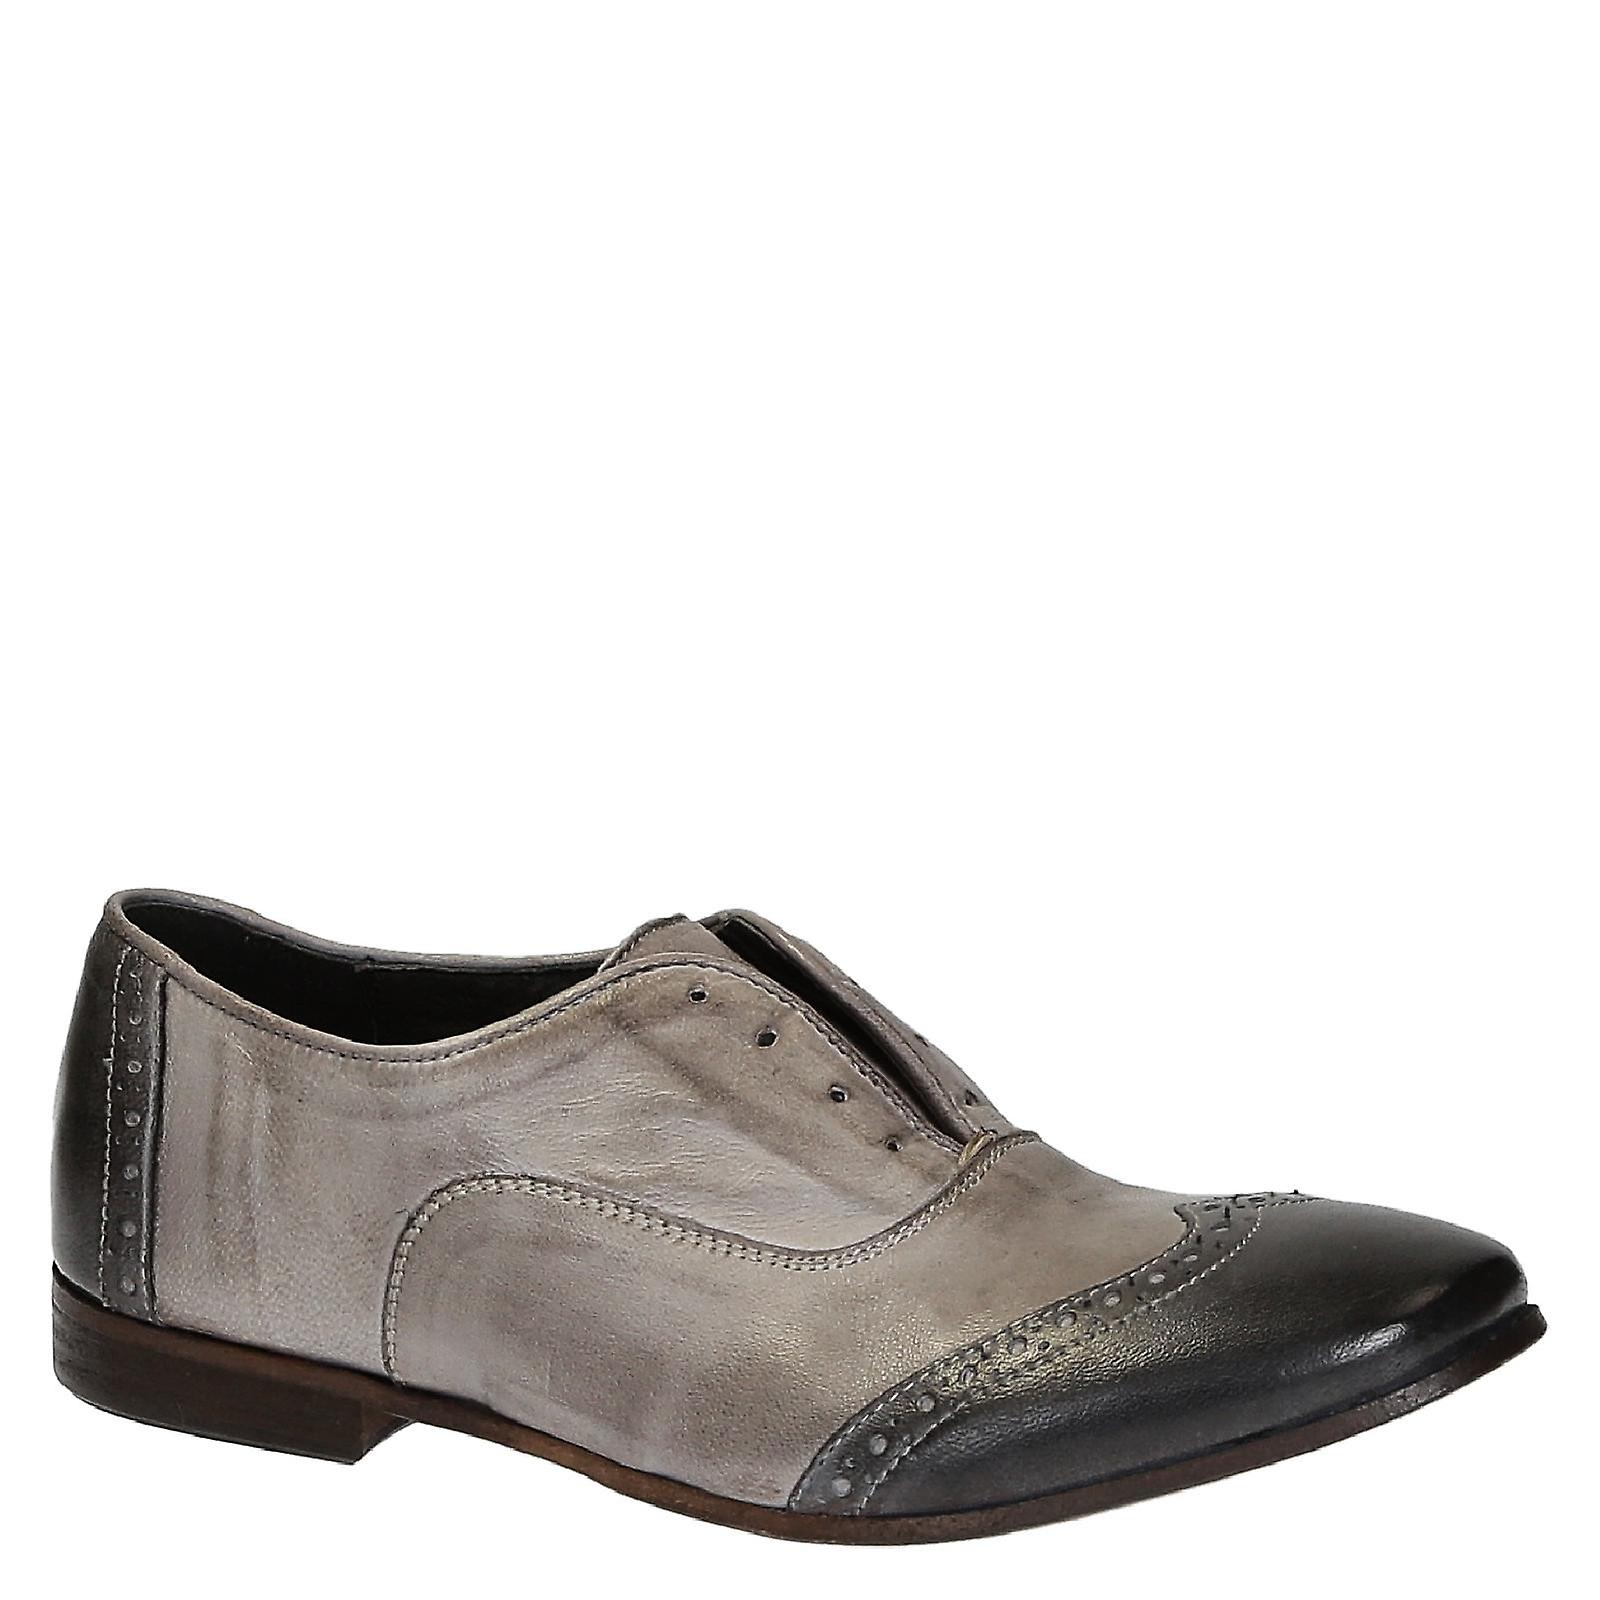 Handmade women's slip-on oxford wingtip shoes in leather XHTKp